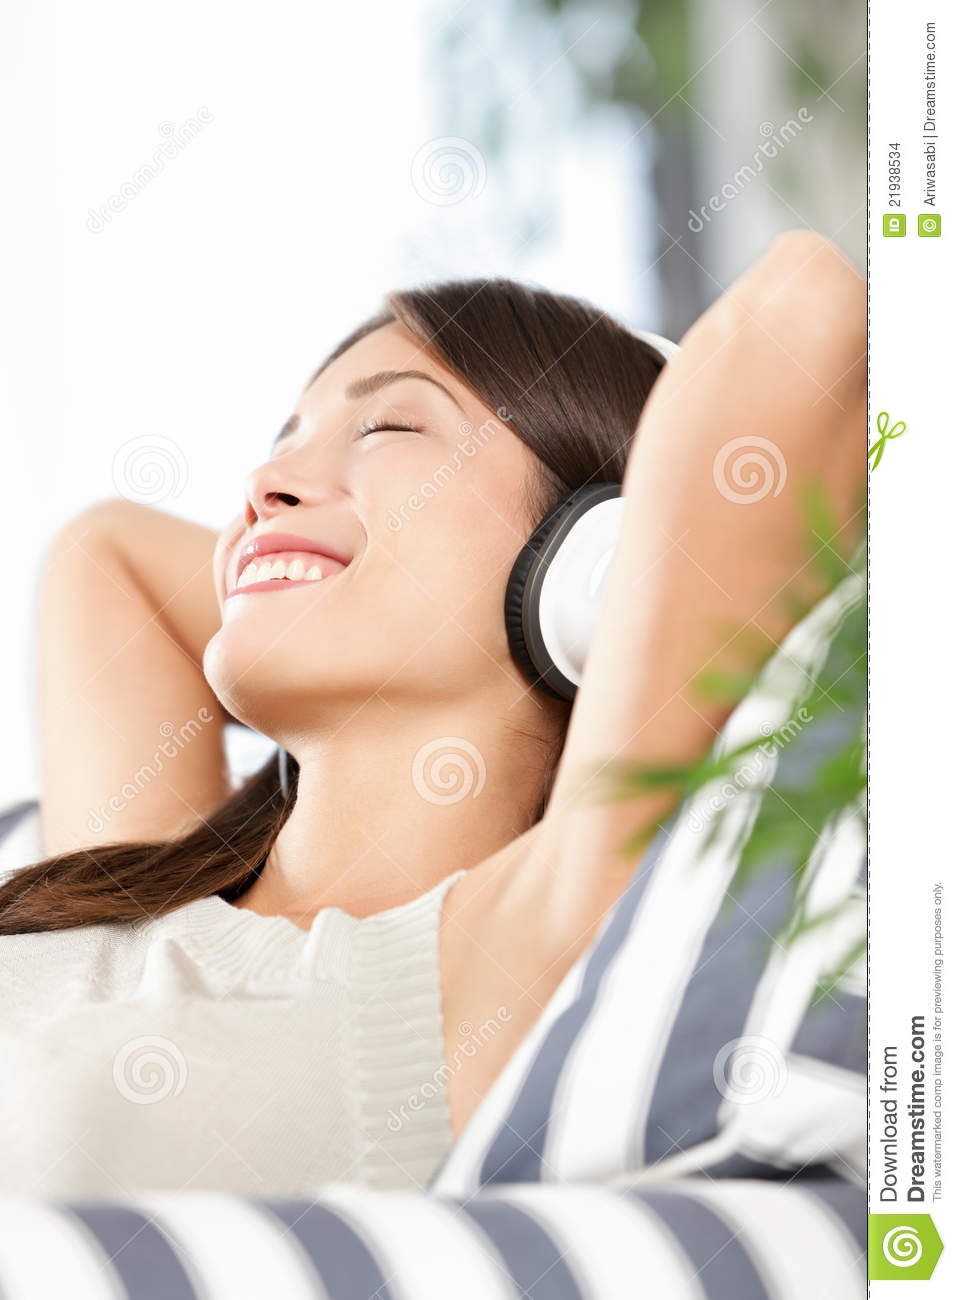 Headphones Woman Listening To Music Stock Images - Image ...